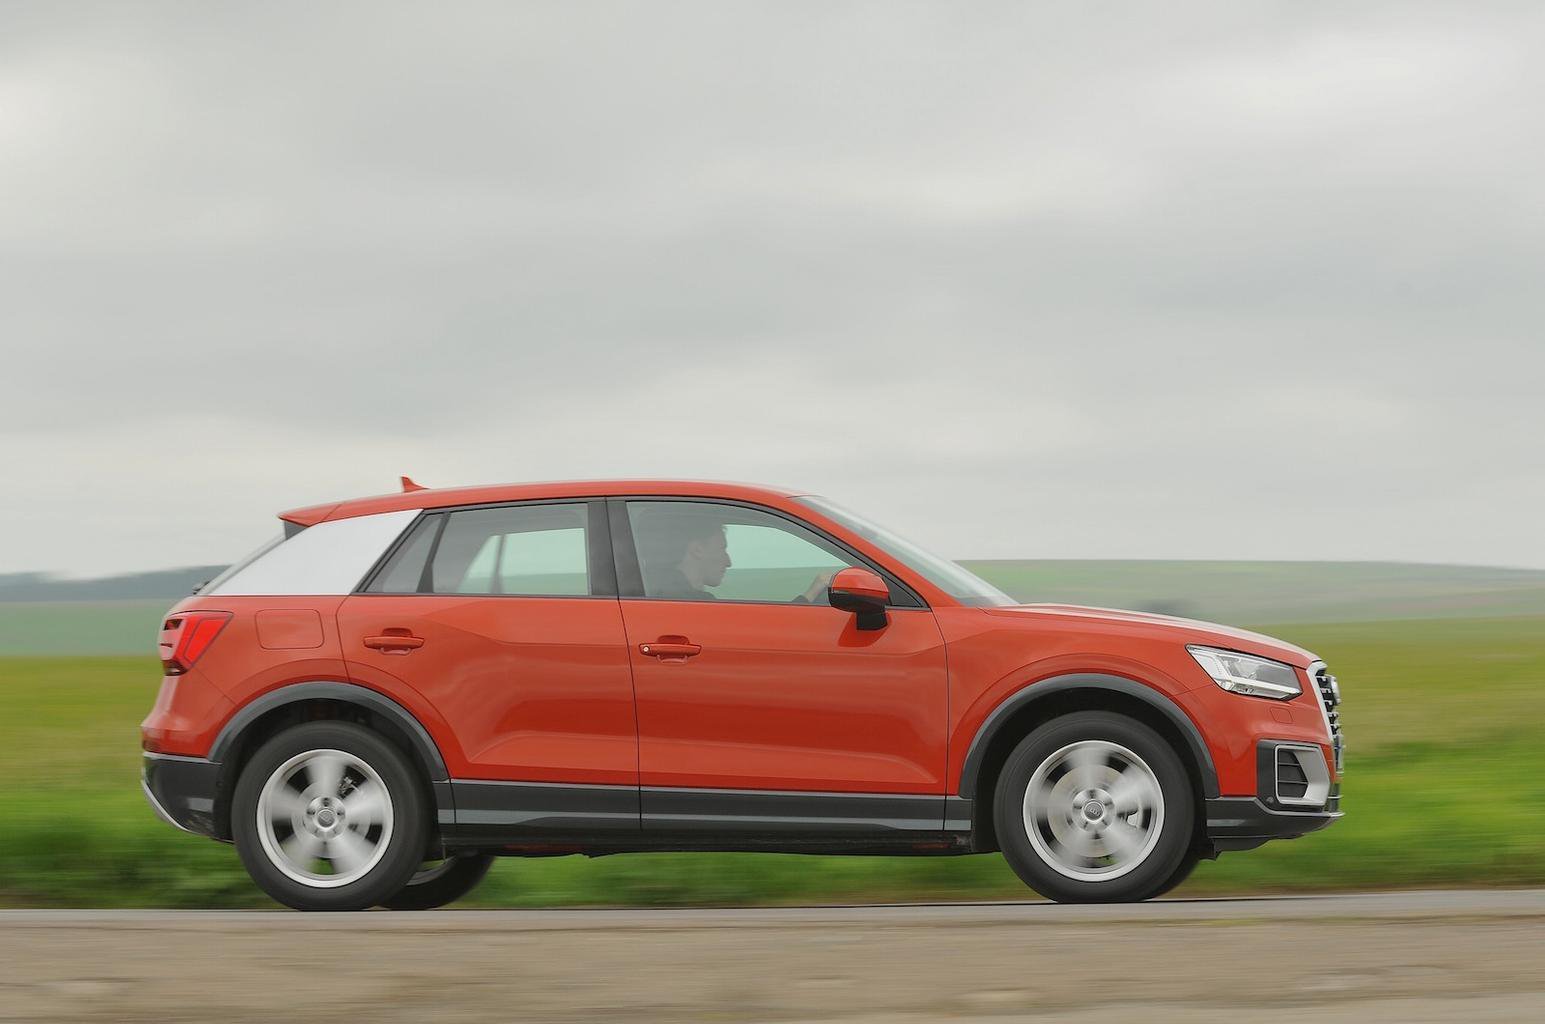 Audi Q2 1.0 TFSI review – verdict